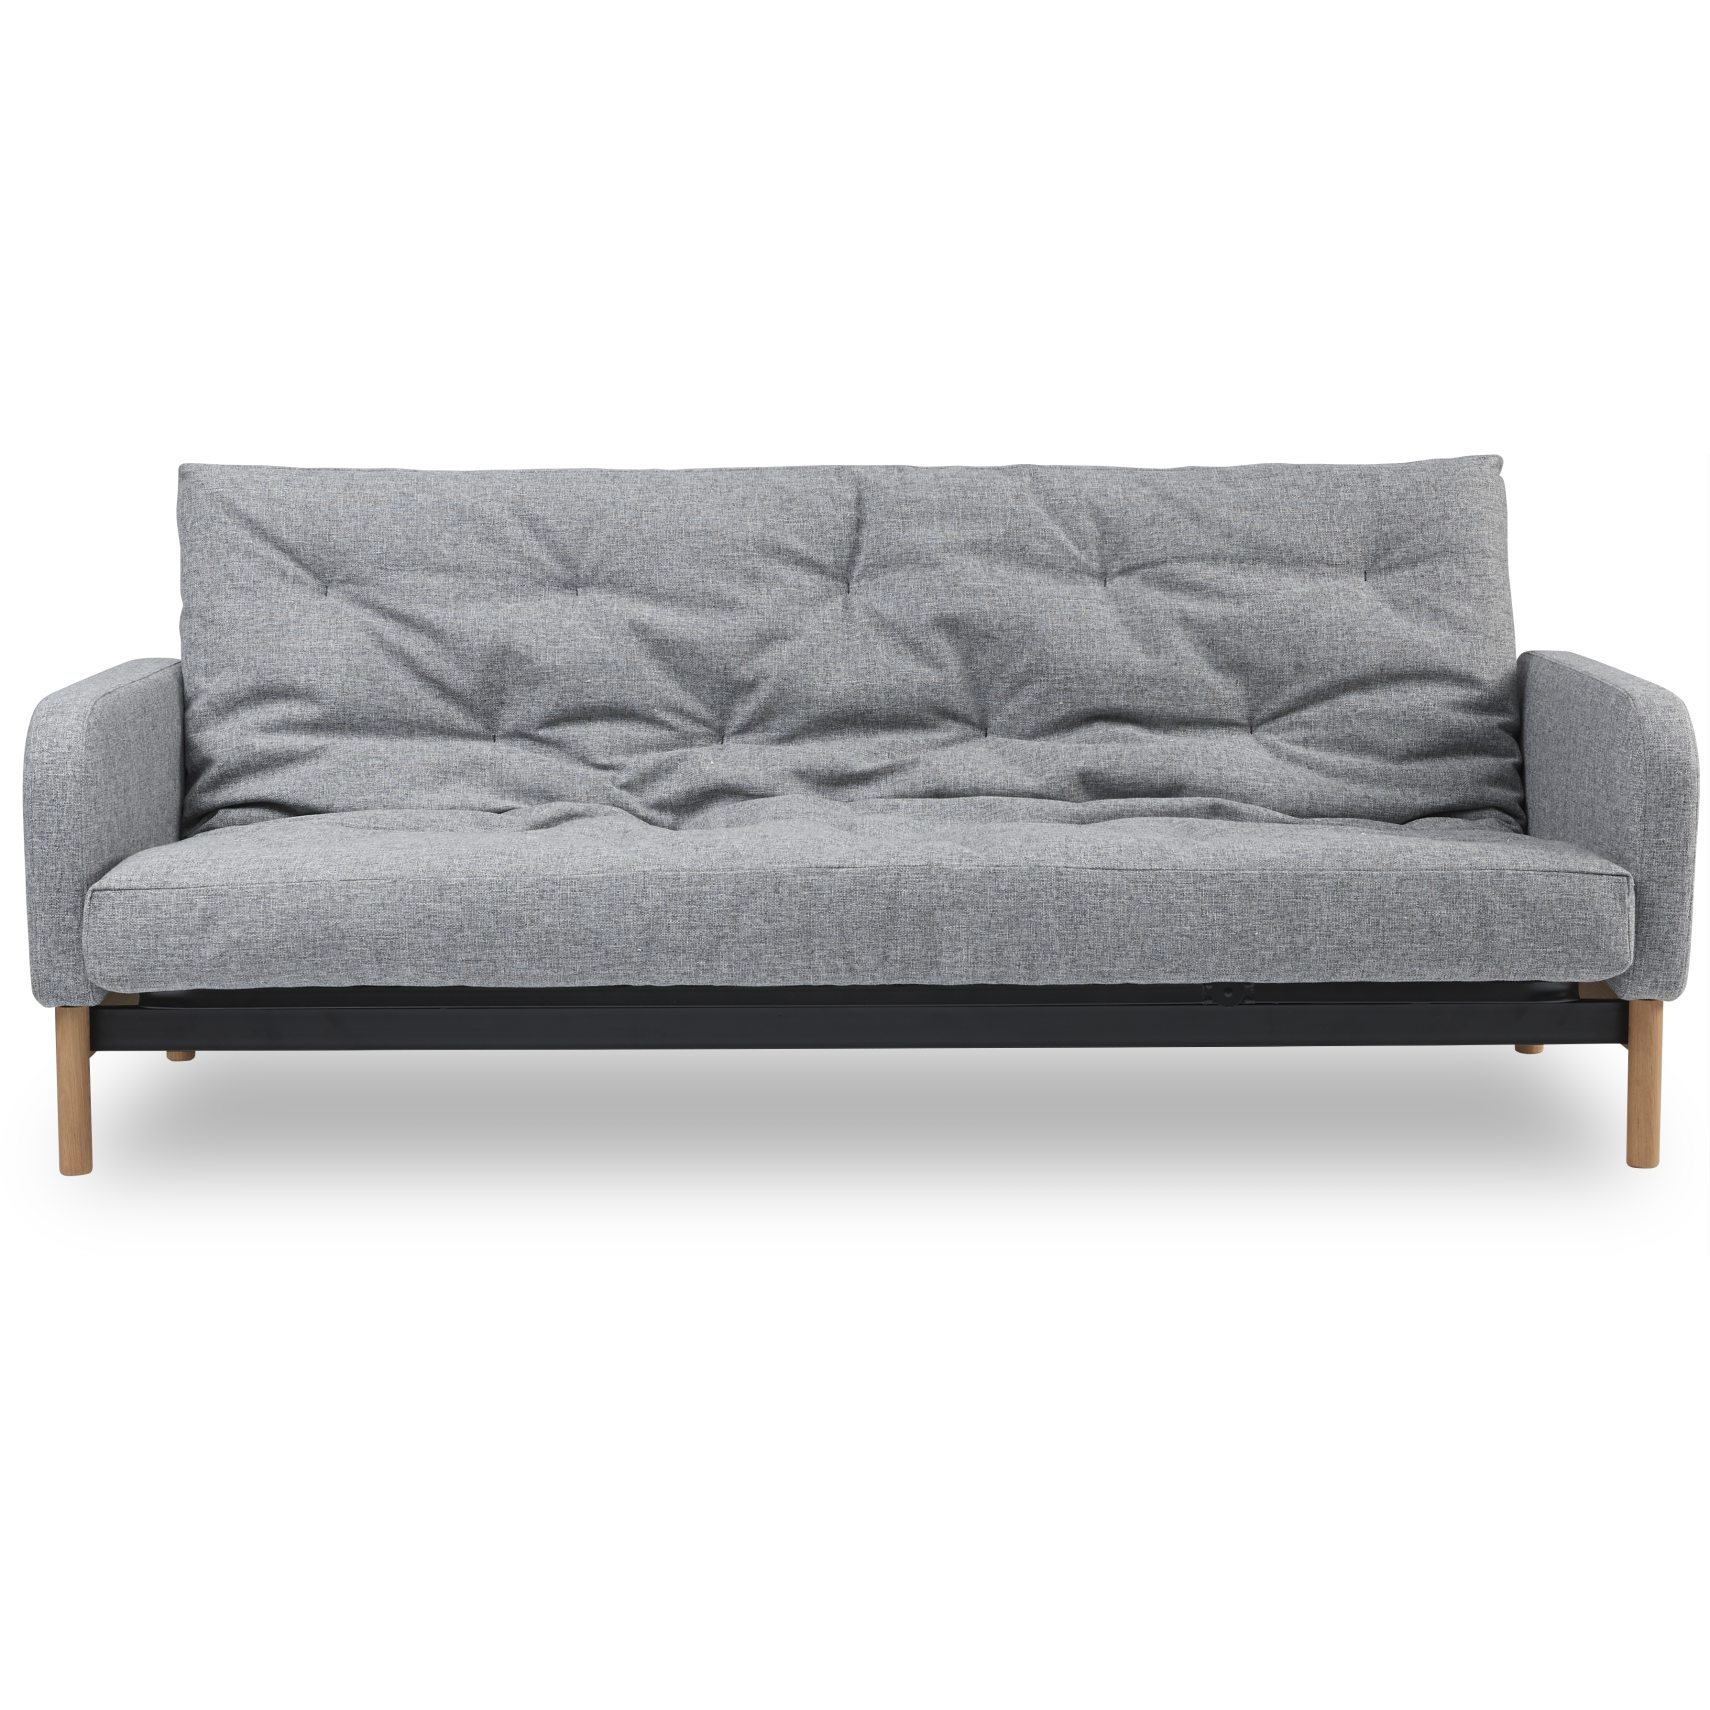 Innovation Living - Spring Round Sovesofa madras (1 stk.)